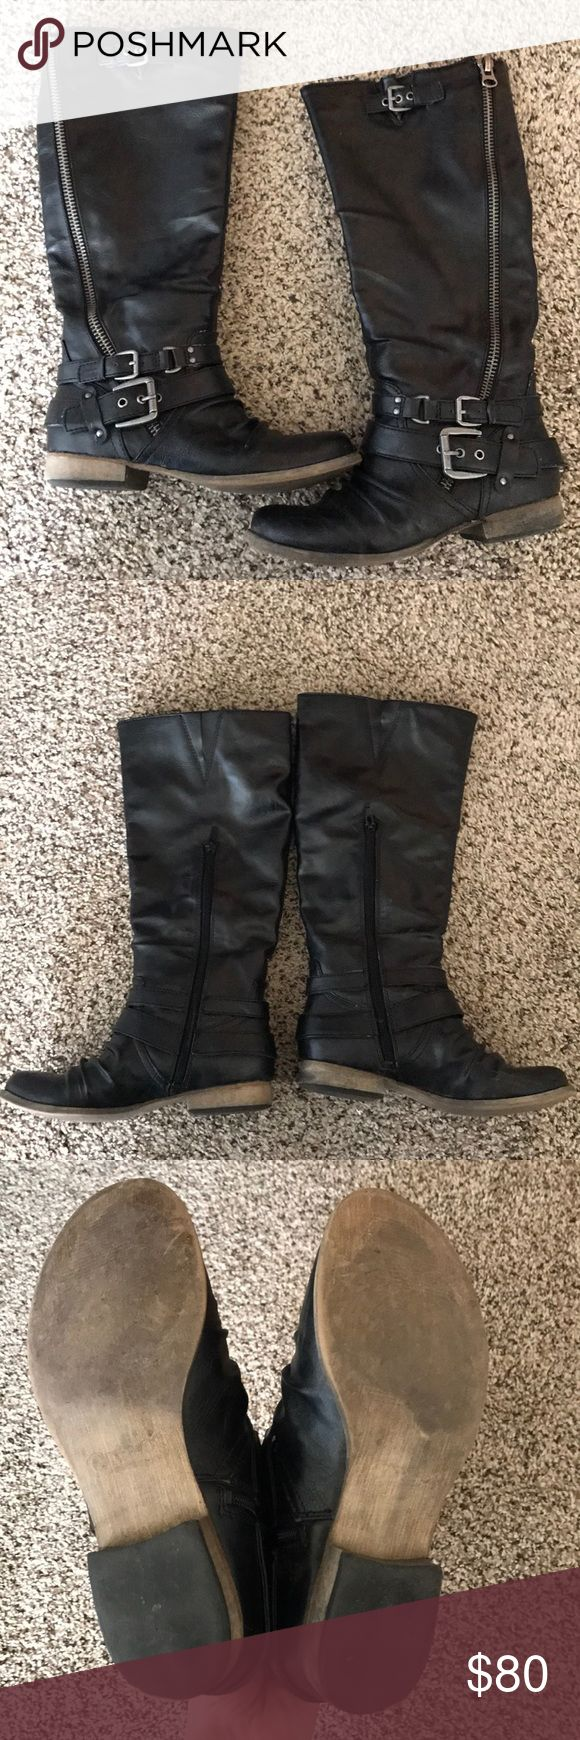 Carlos Santana Boots They will not come with the orig Box as it is too large.  Worn three times.  I purchased in hopes I can wear a thin sock however they are a tad bit too small. Carlos Santana Shoes Combat & Moto Boots